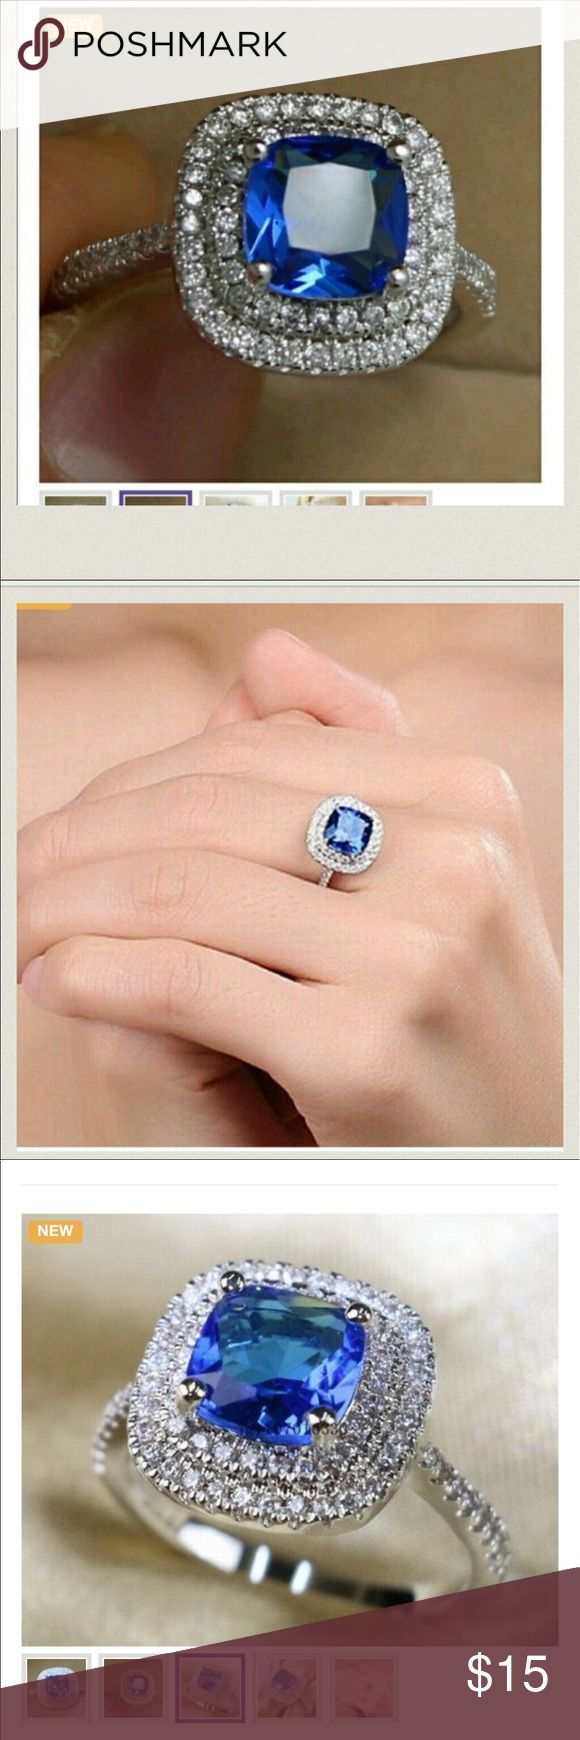 New .925 sterling silver ring sz. 9 Material: Sterling silver Condition: New Available Size 9 Available Colors: Blue  Material:925 sterling silver  Stone : Blue CZ Stone weight:2ct  Stone size: 5mm*5mm  Quality :High quality Jewelry Rings